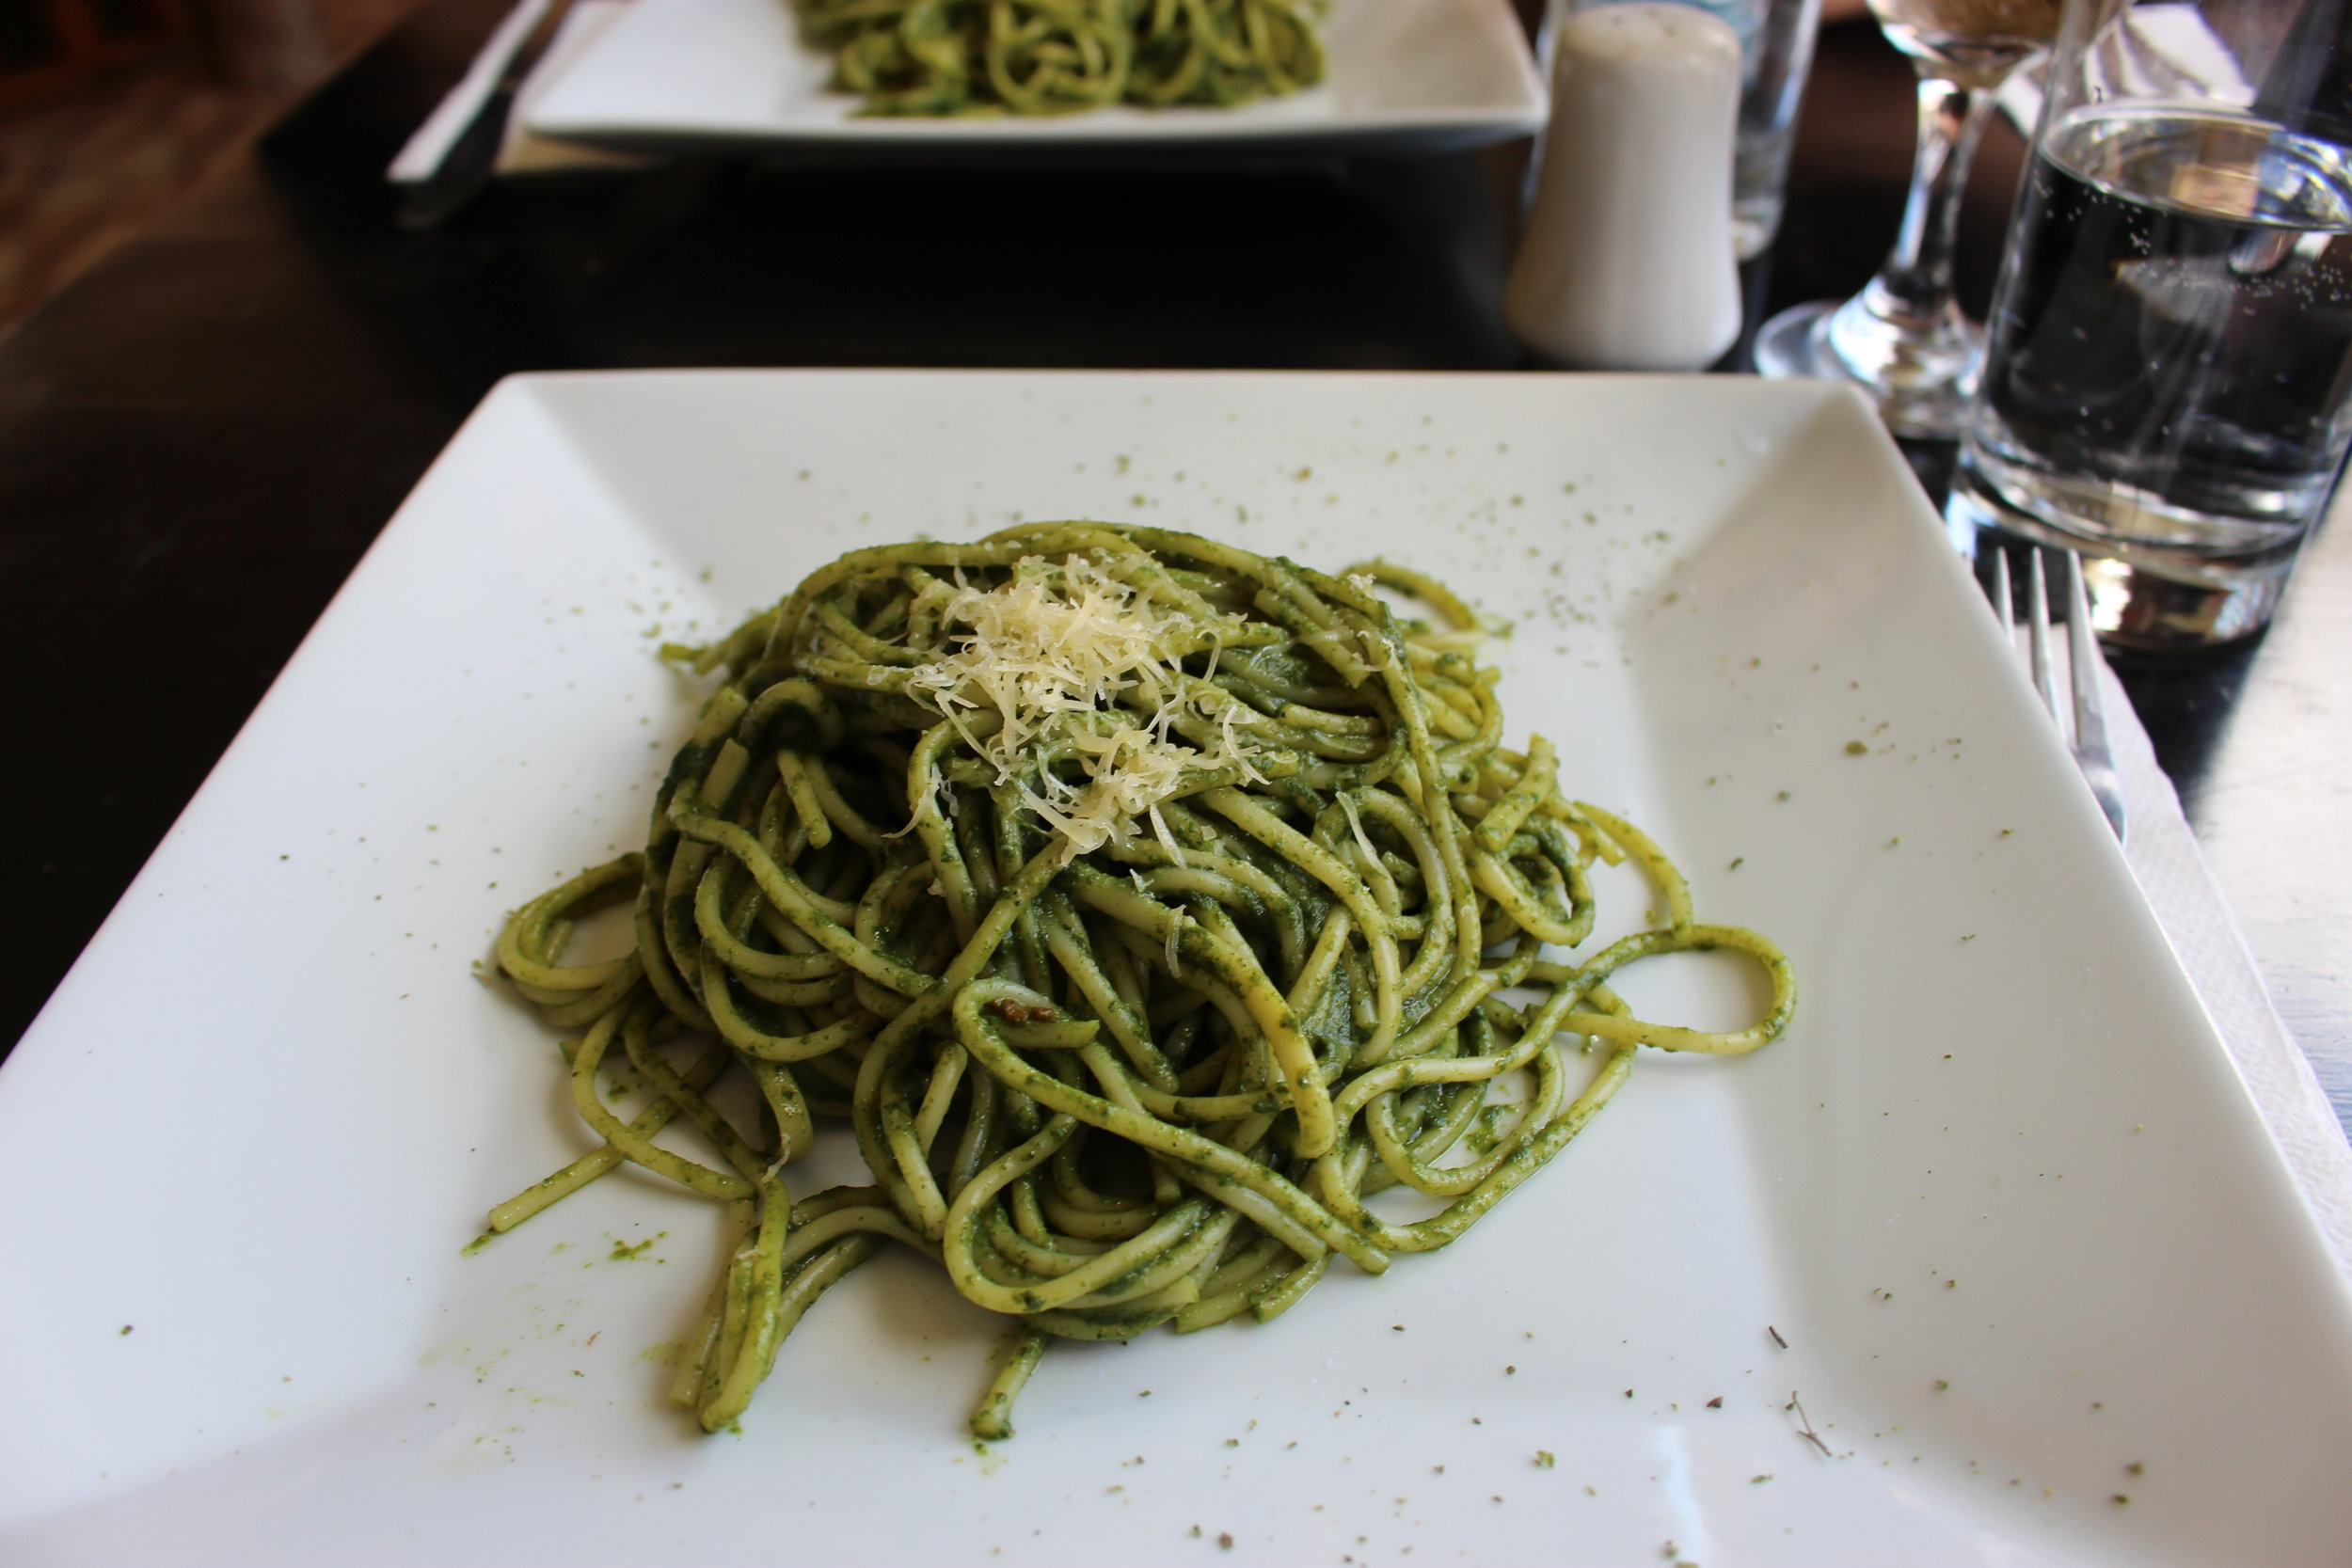 For an entree I got pesto pasta. It was delicious and probably the only meal I actually finished in Peru, which wasn't a good thing.